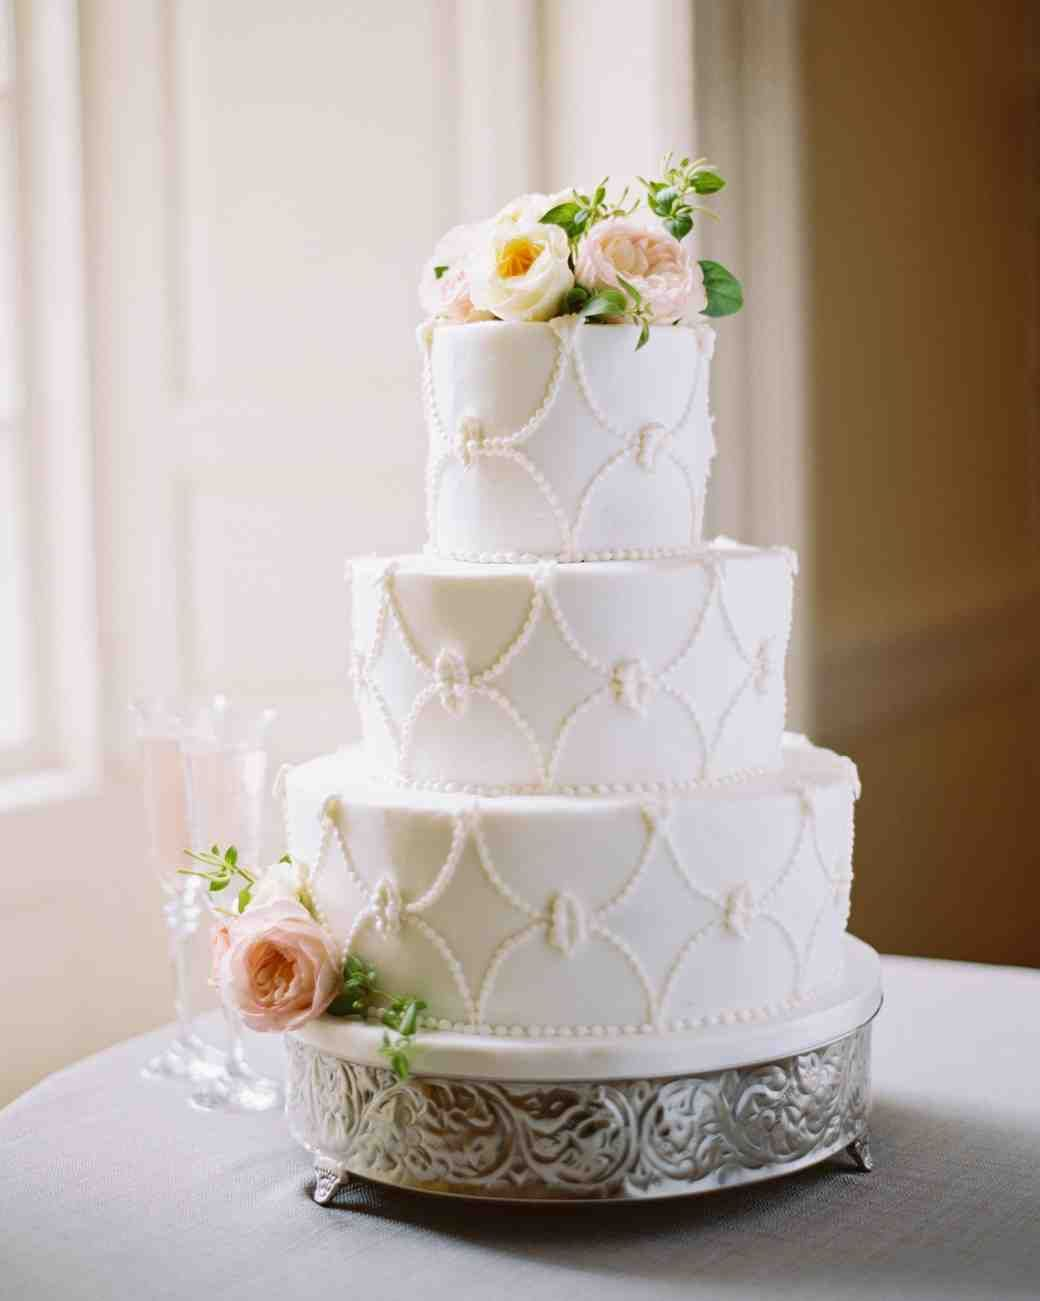 Spring Wedding Cakes That Are (Almost) Too Pretty to Eat | Martha ...